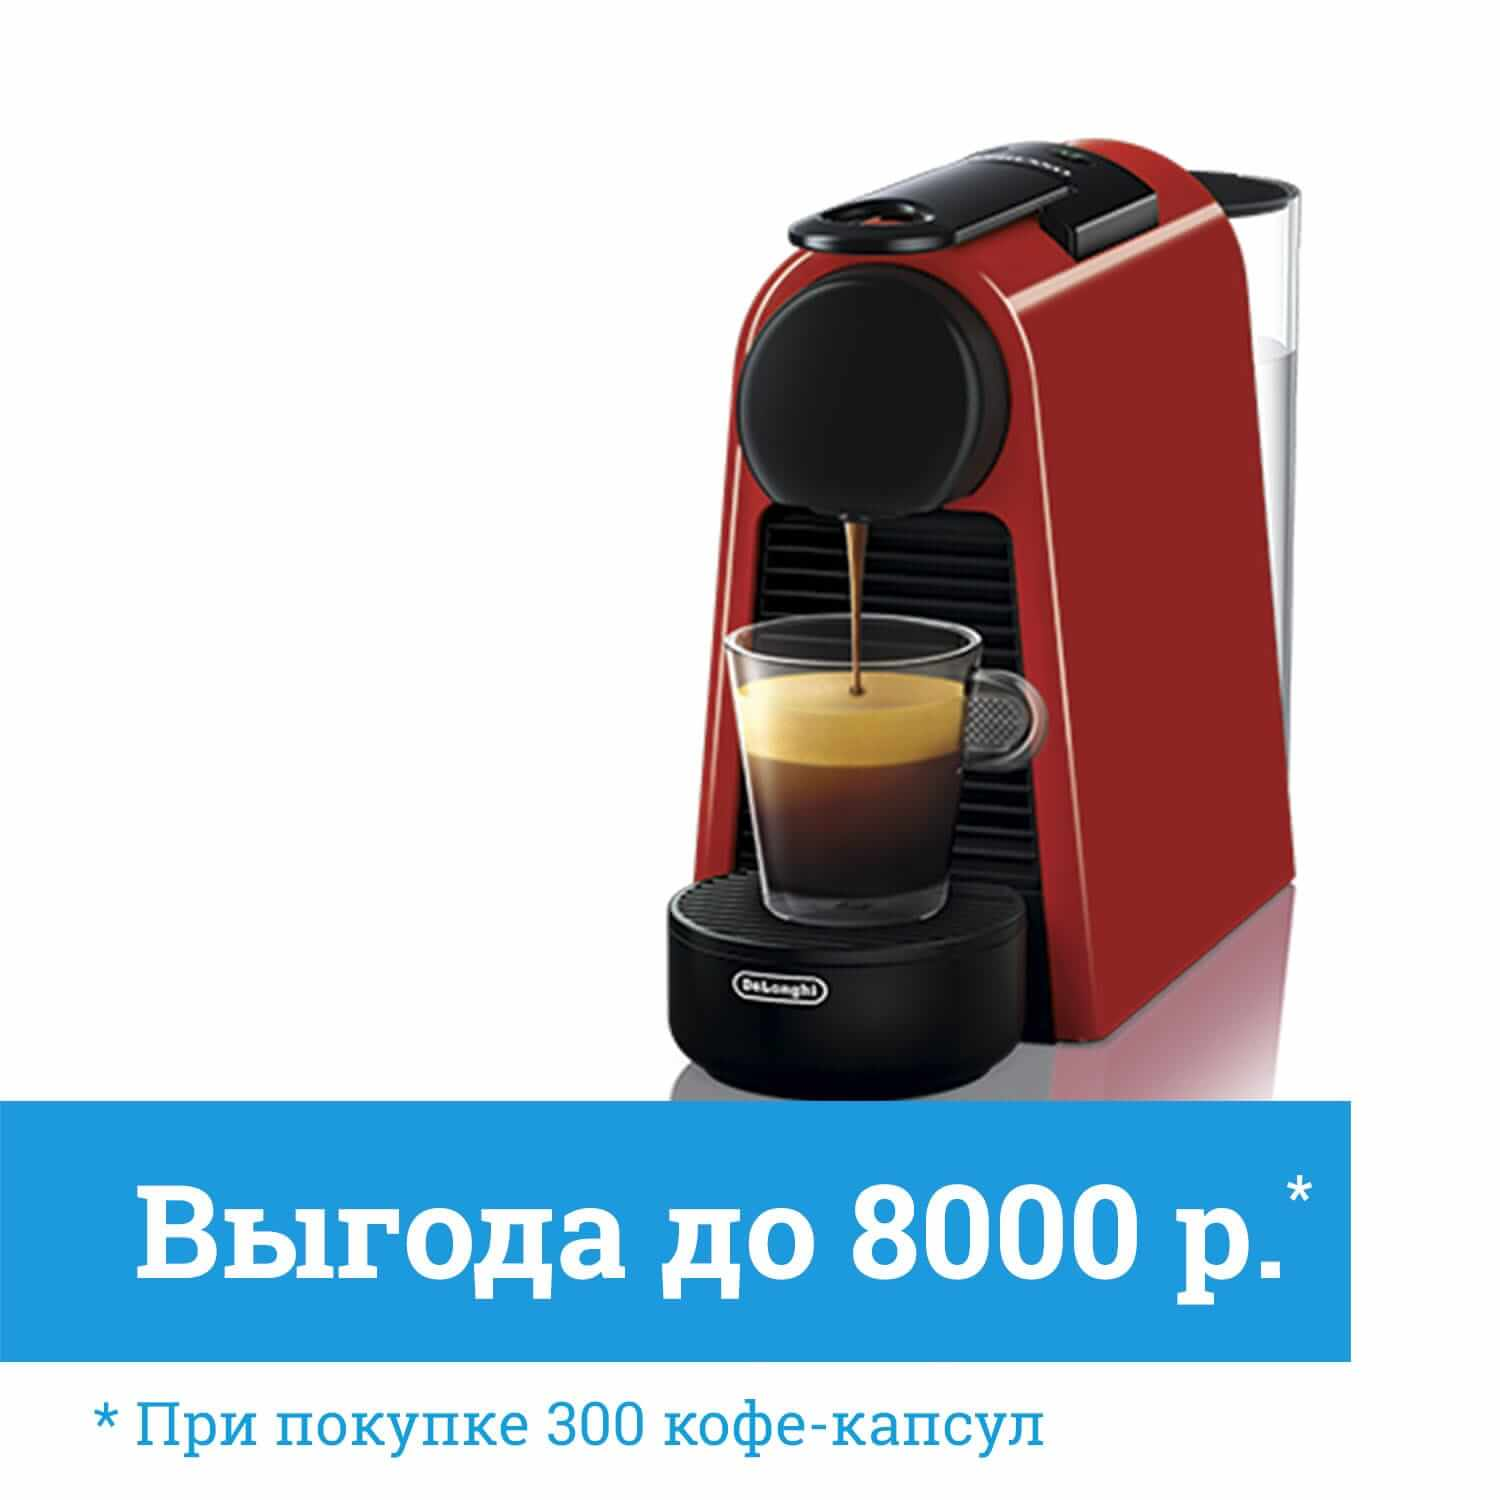 Кофемашина Delonghi Nespresso Essenza Mini со скидкой